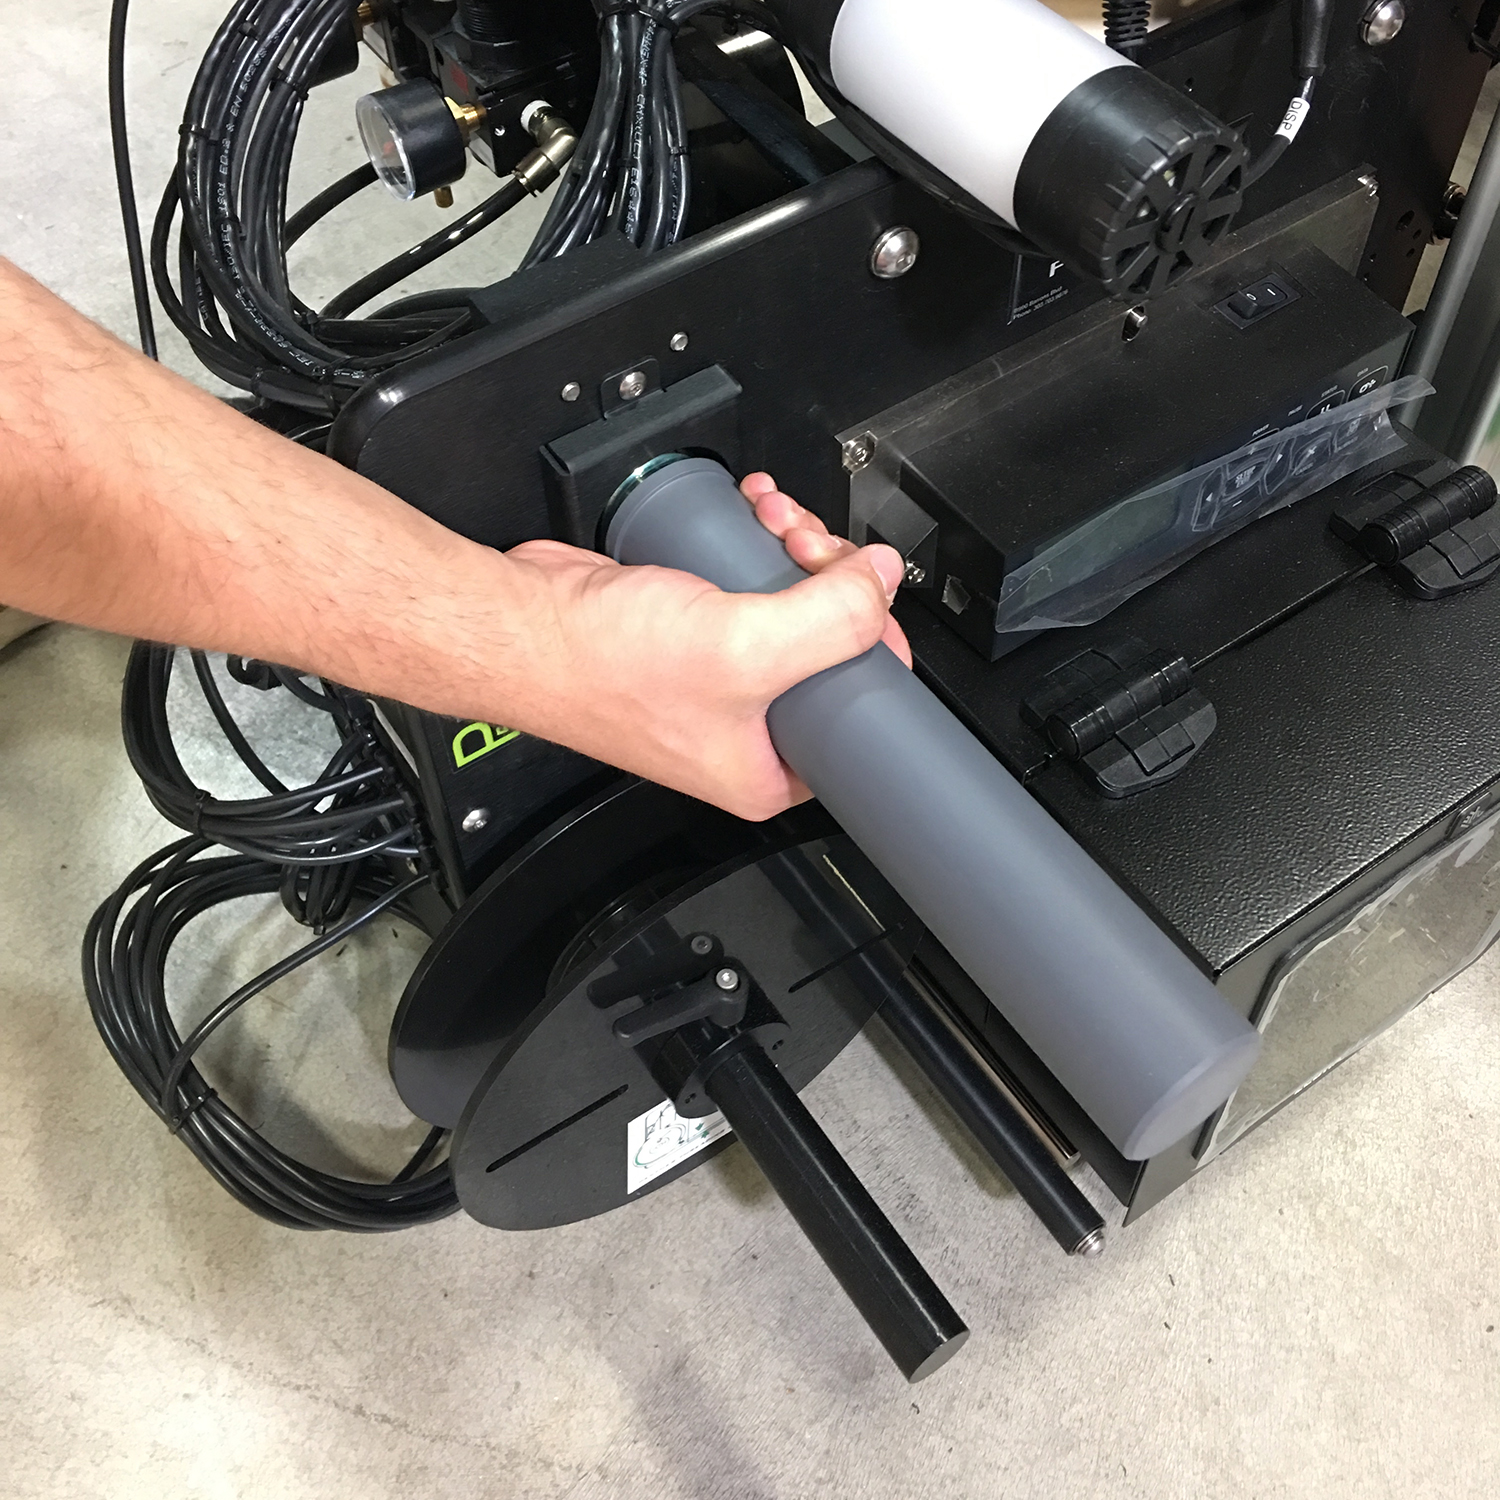 Lift from under the gray waste take-up roller. The location of the roller on your specific system may be in a different position than shown above.